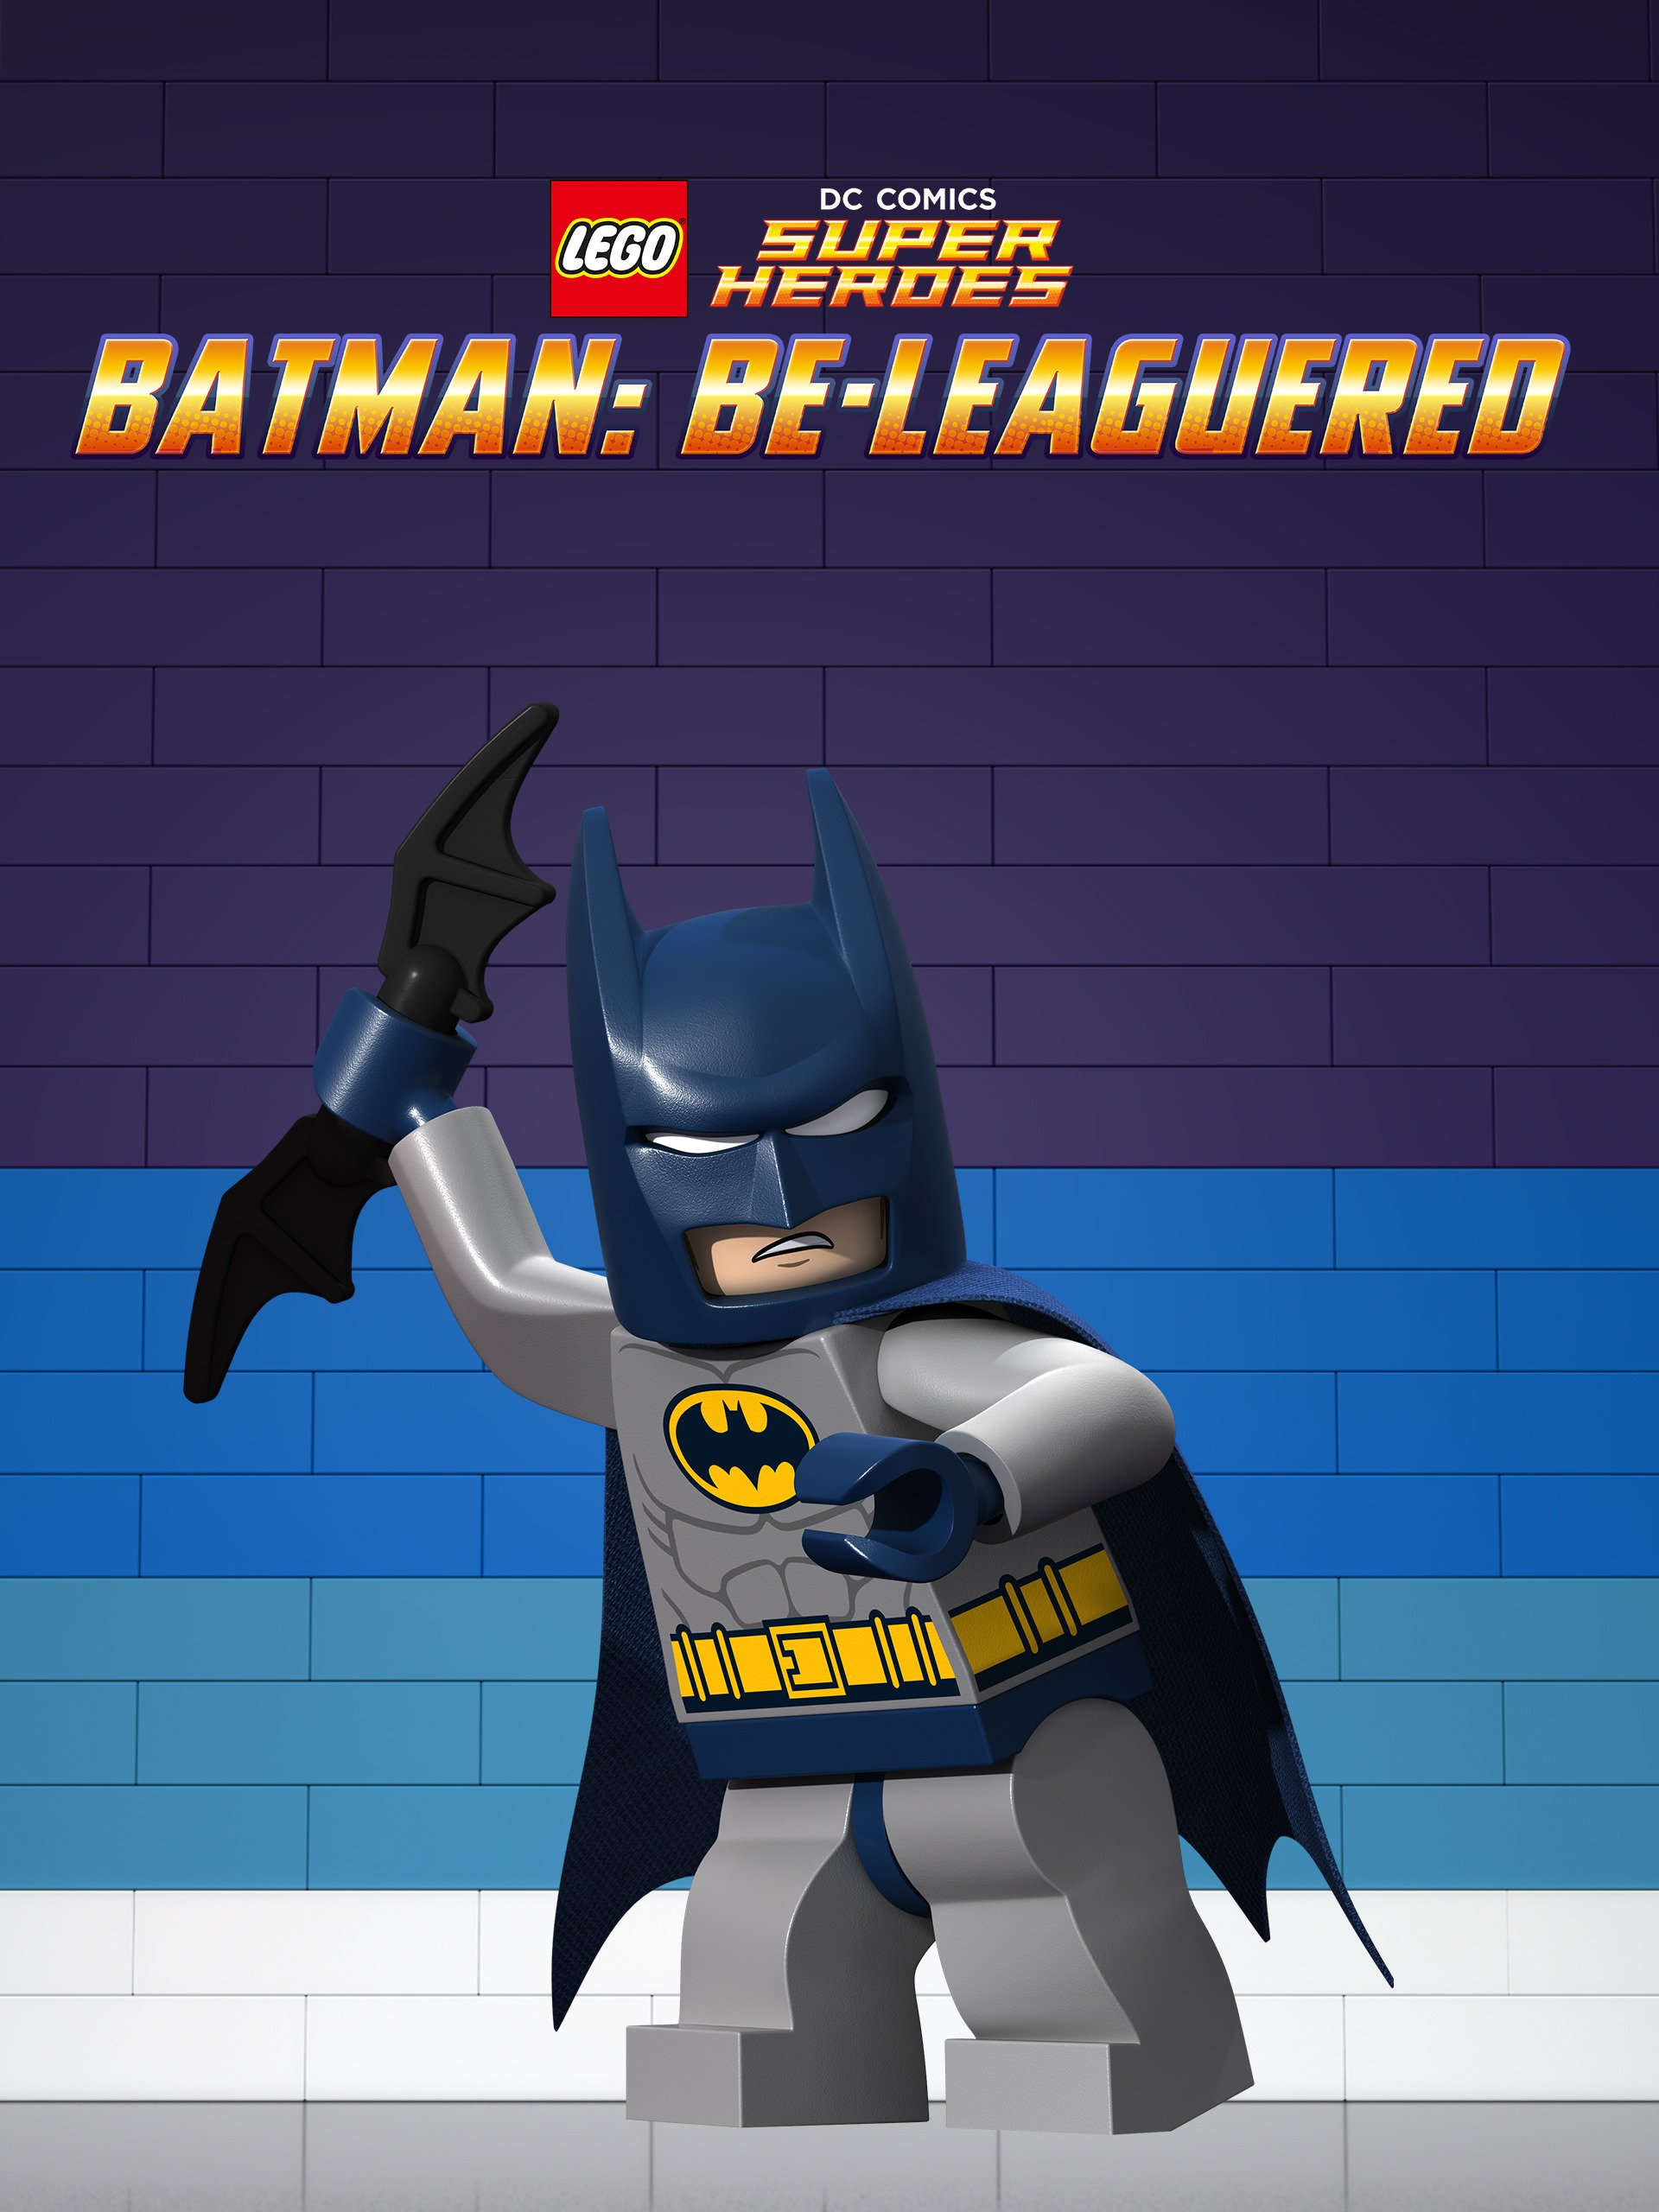 BATMAN: BE-LEAGUERED